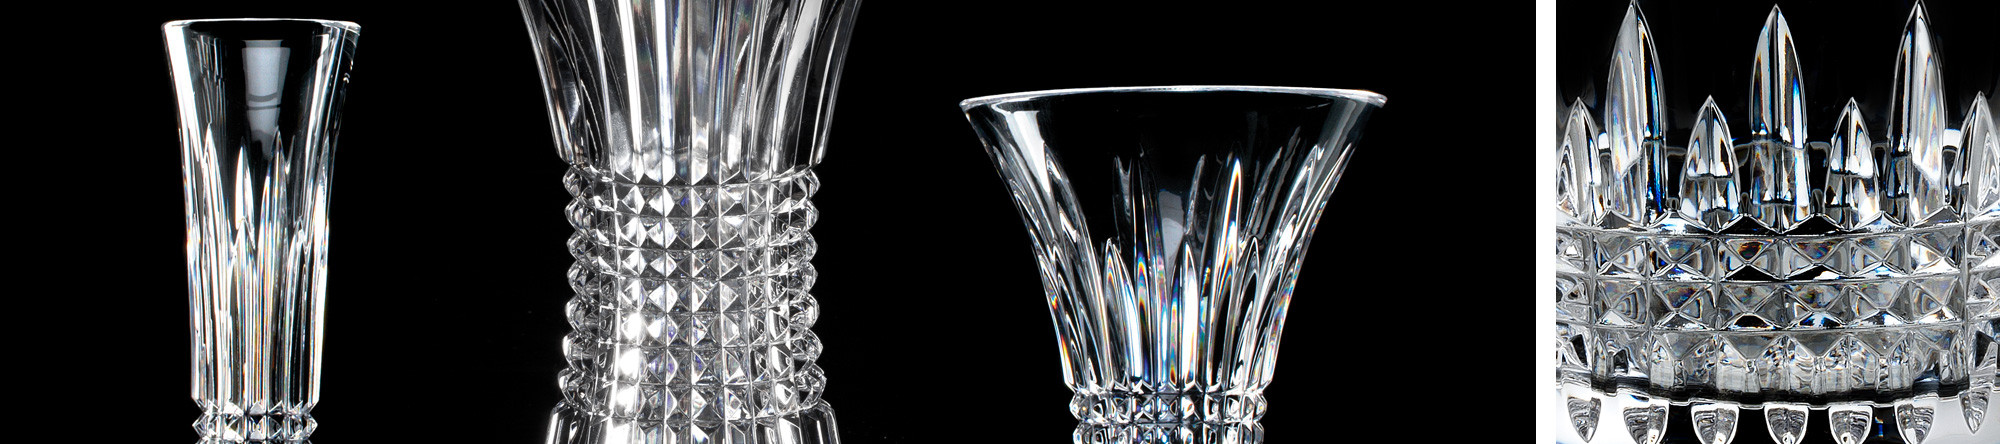 waterford rebel bud vase of lismore diamond collection home gifts waterforda crystal with lismore diamond gift top